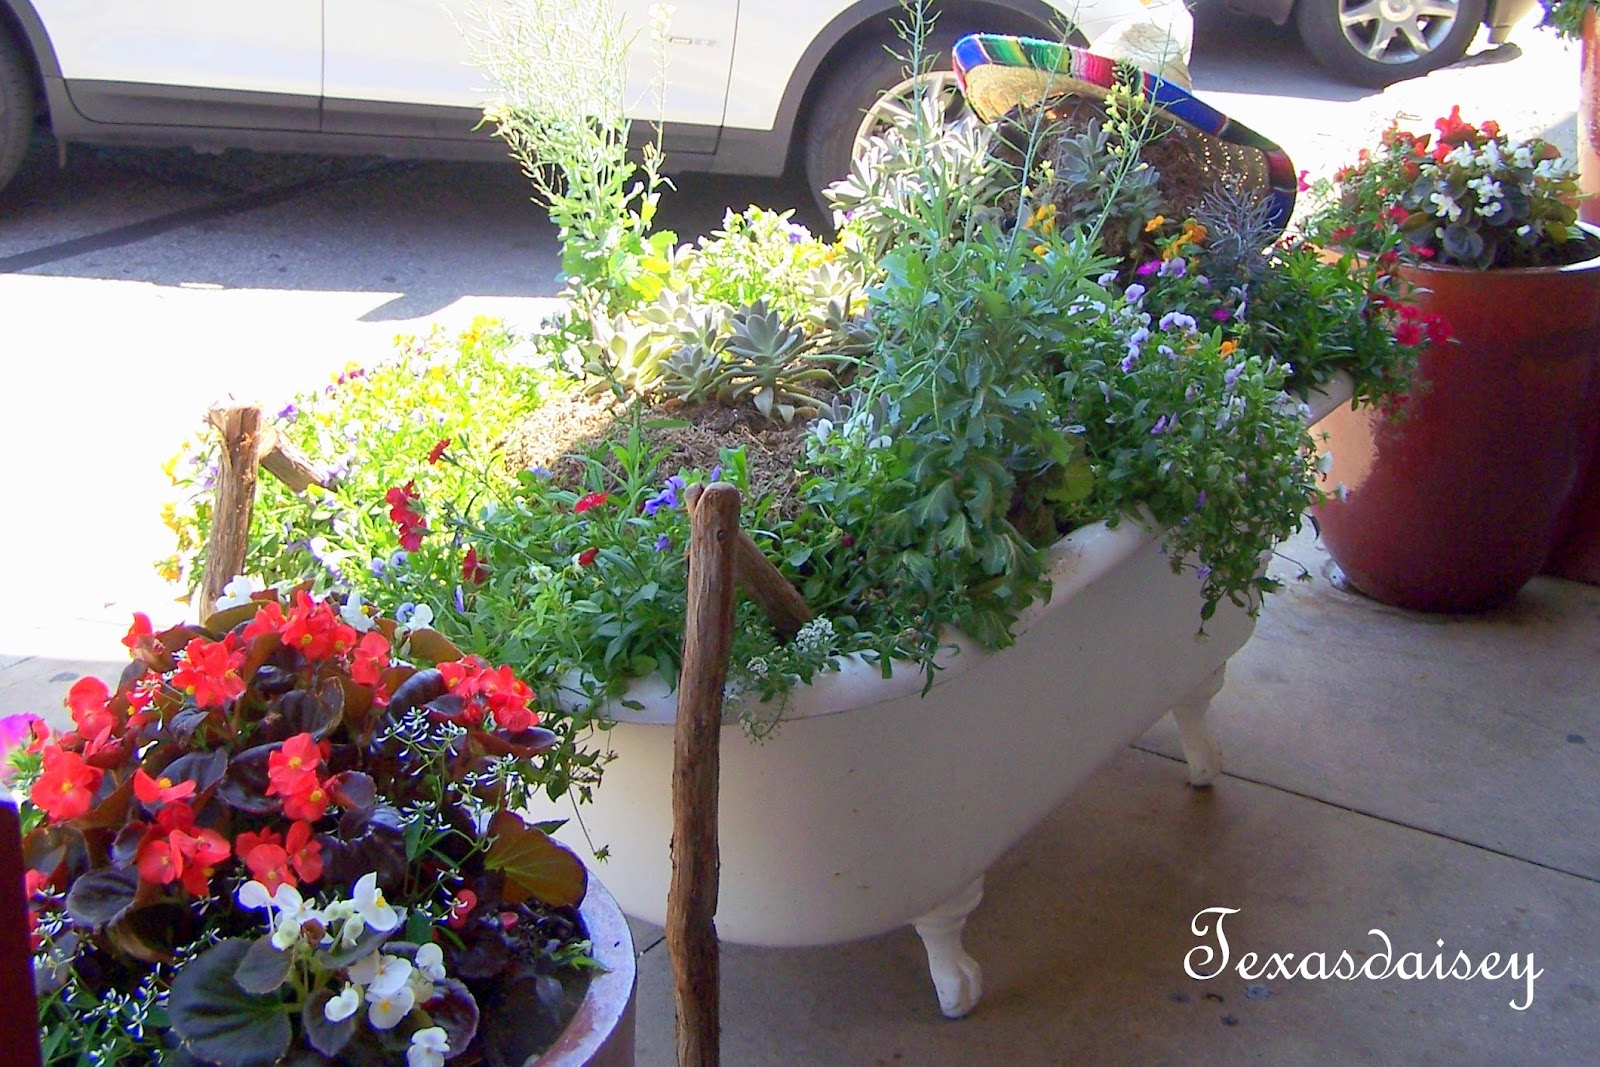 Texasdaisey creations container garden ideas for Container gardening ideas